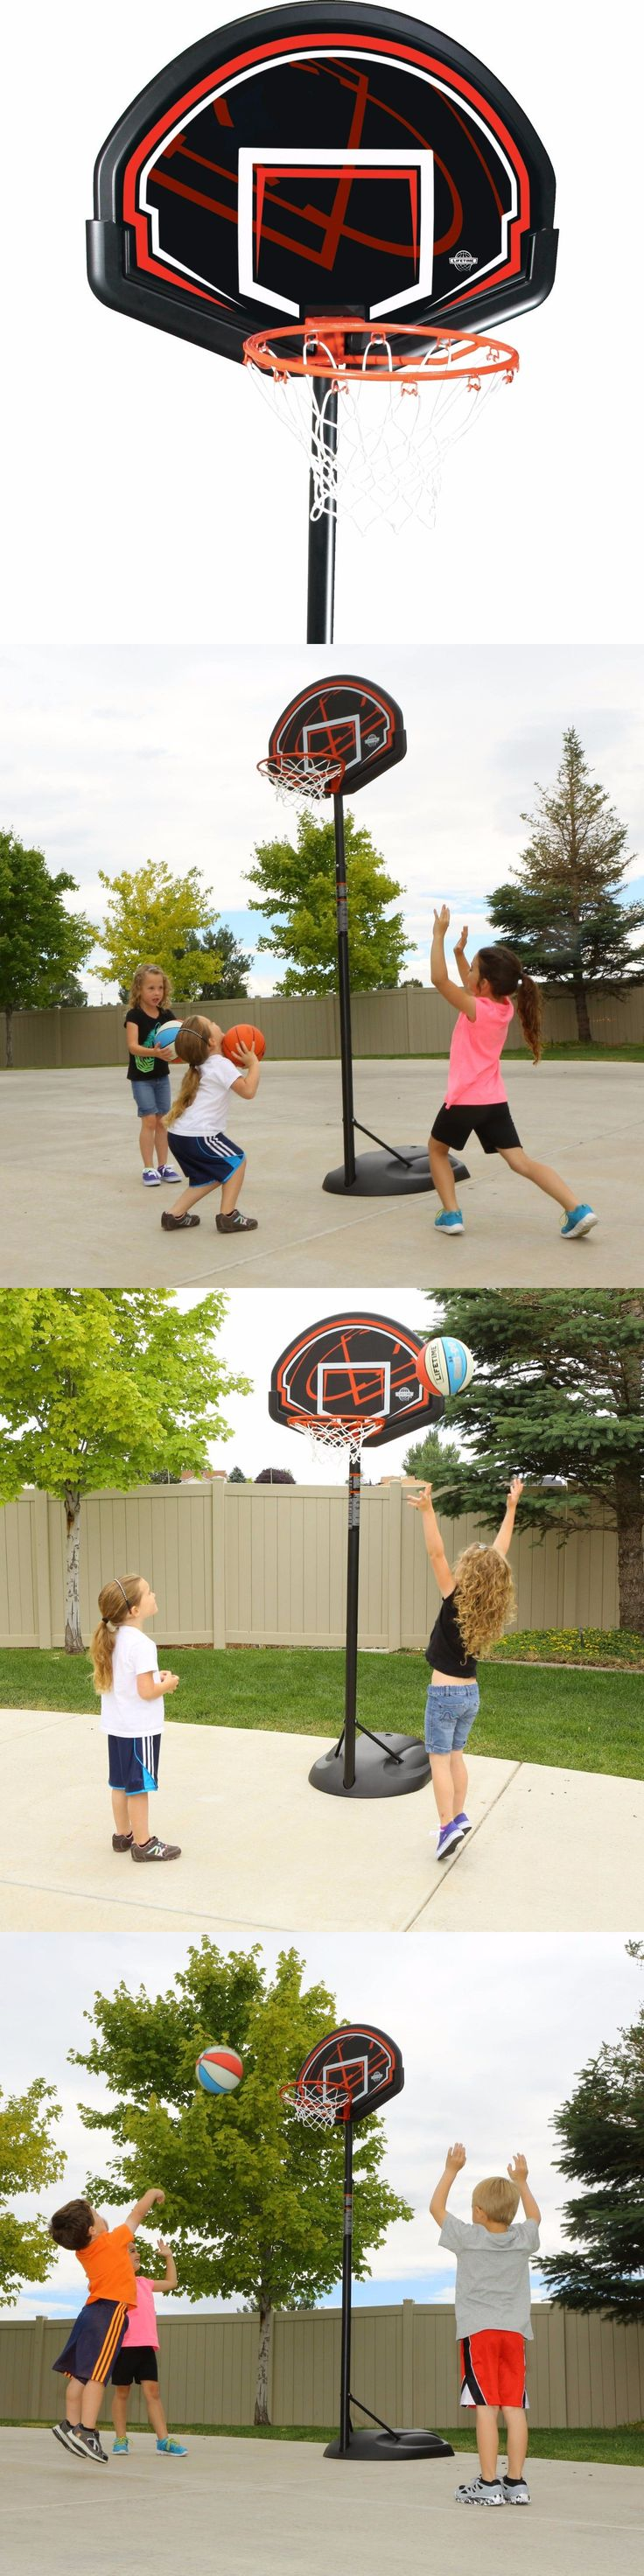 Backboard Systems 21196: Sale Basketball Hoop Pro Mini Adjustable Backboard Rim System Portable BUY IT NOW ONLY: $100.3